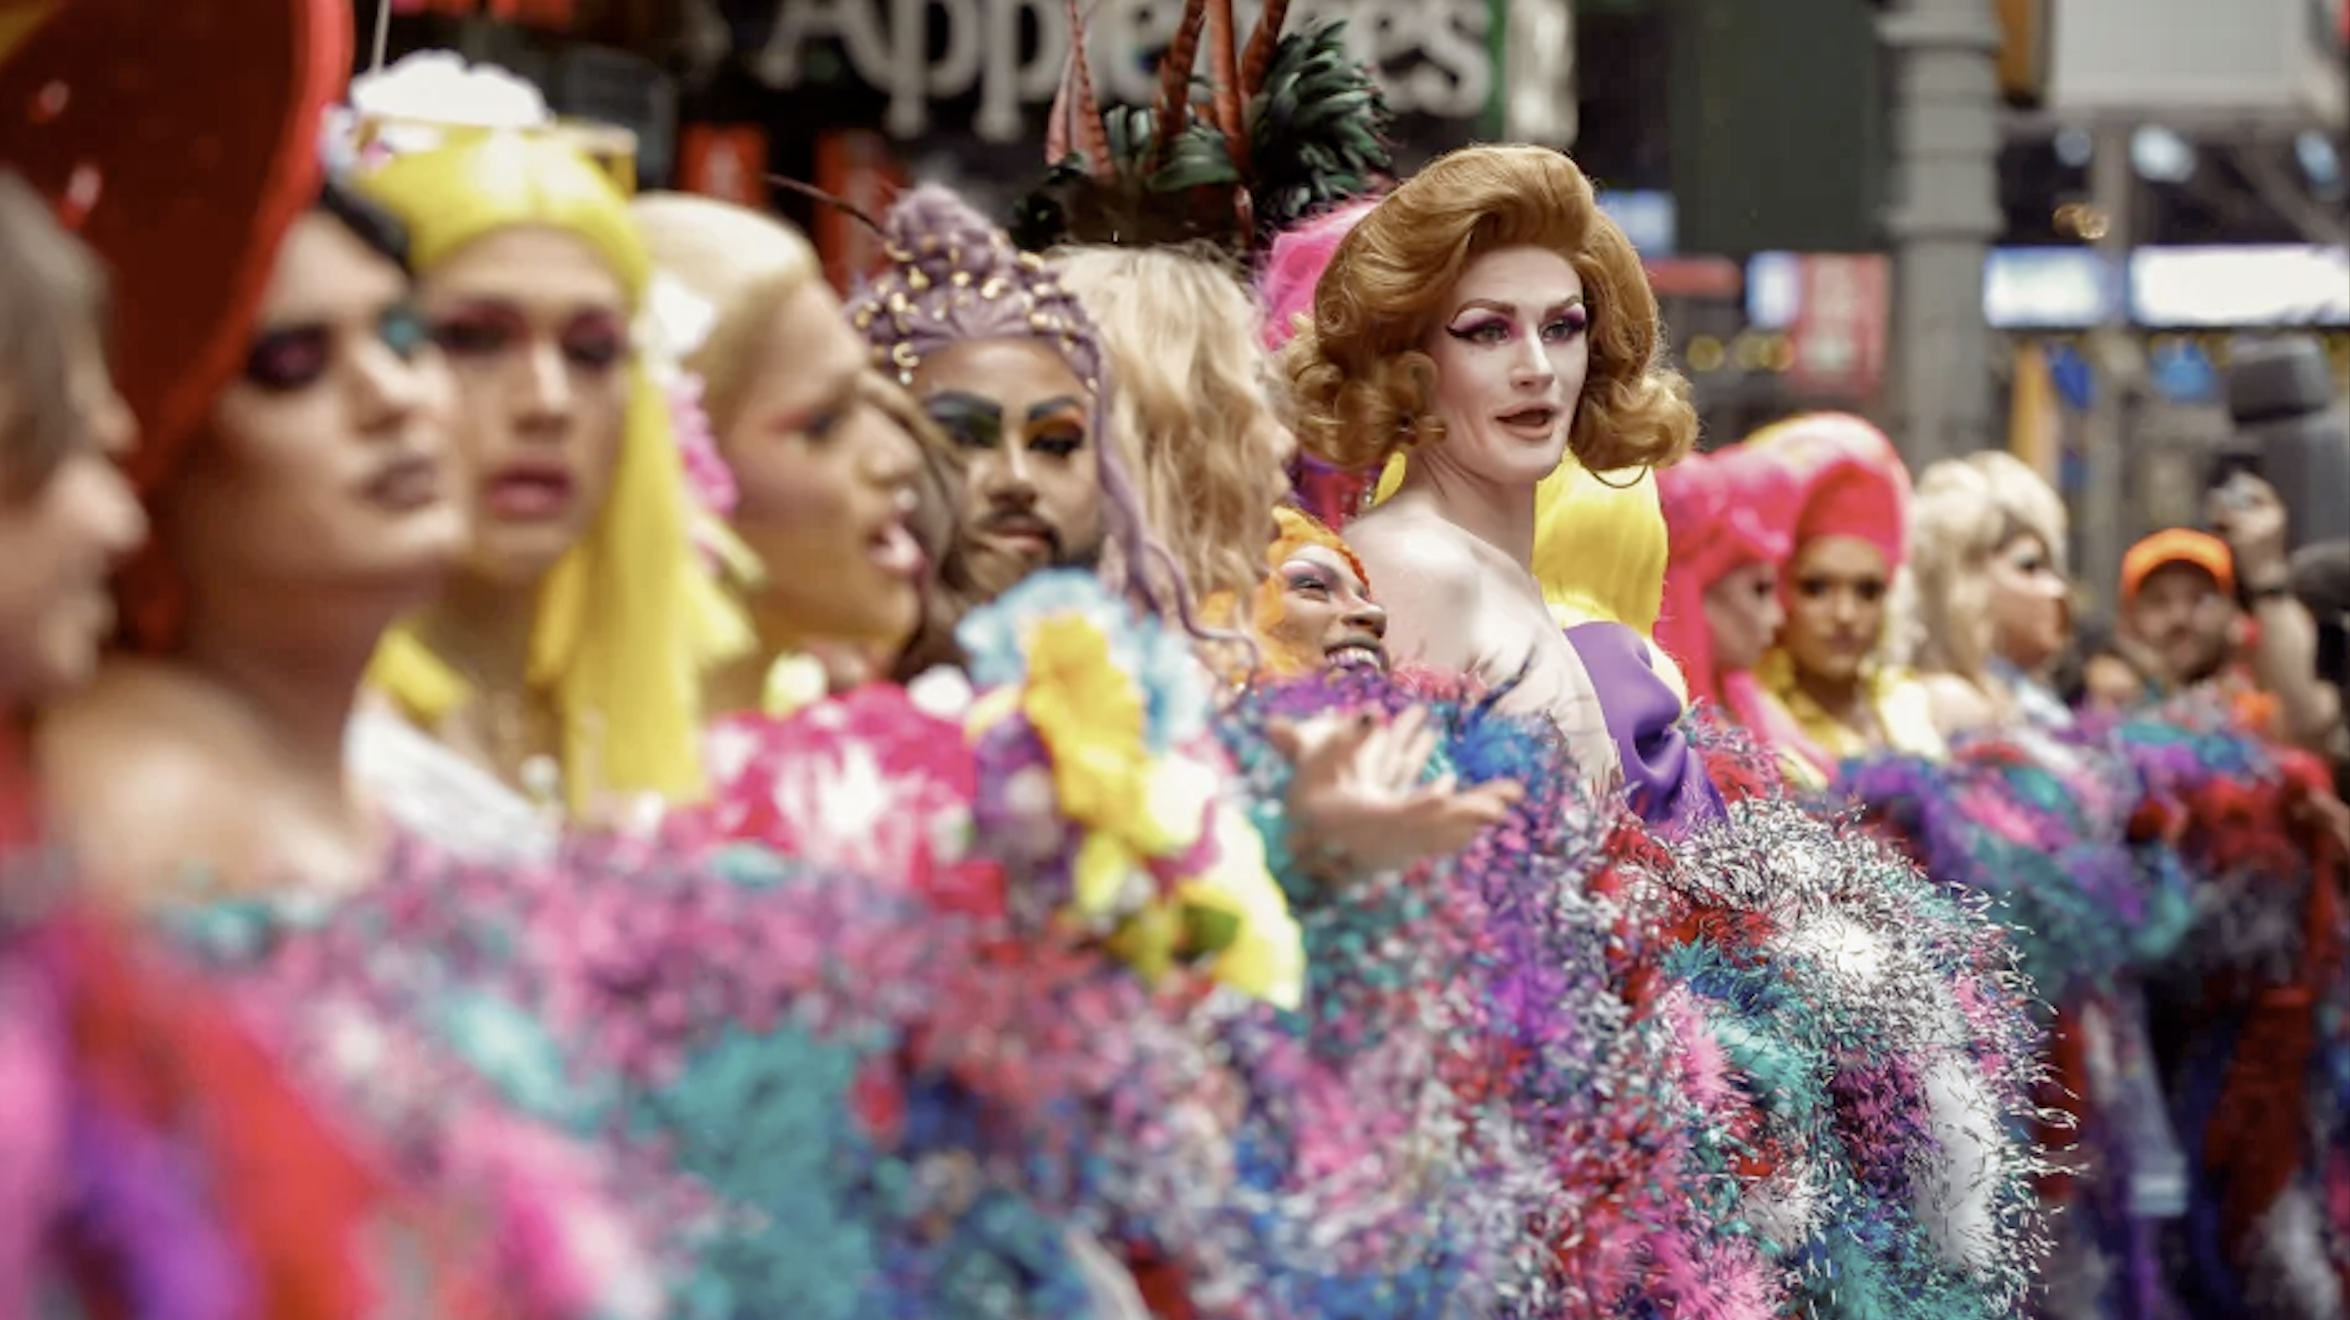 A shot of Pride Parade-goers in colorful costumes